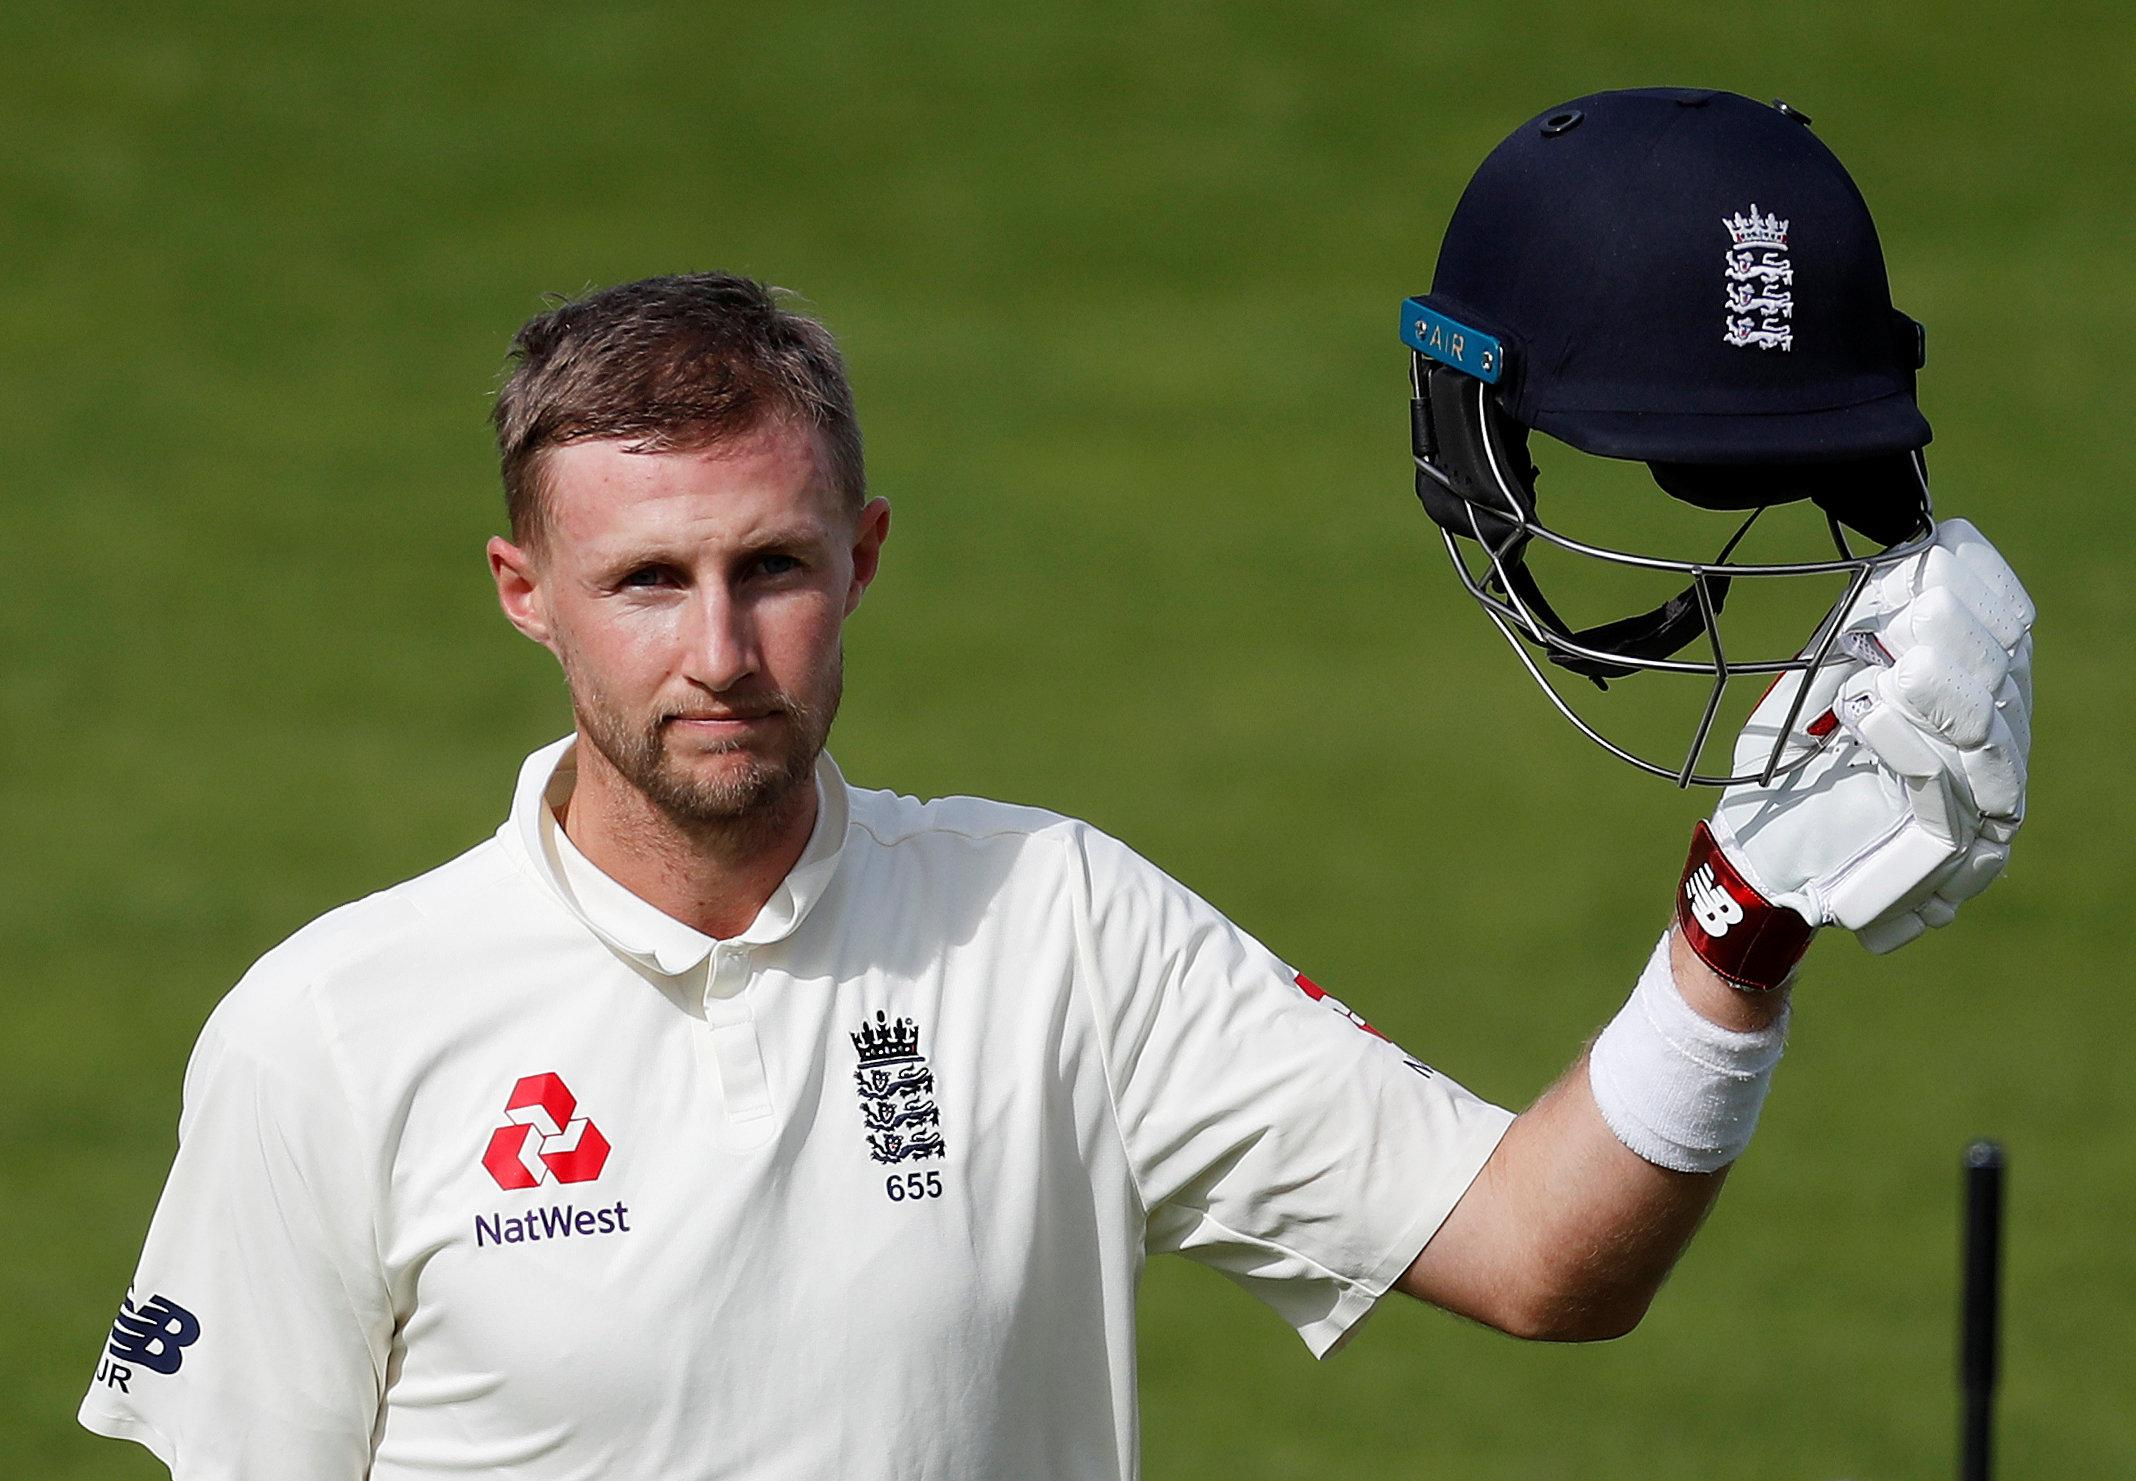 Joe Root also hit an important century for England, his first since last summer, at The Oval